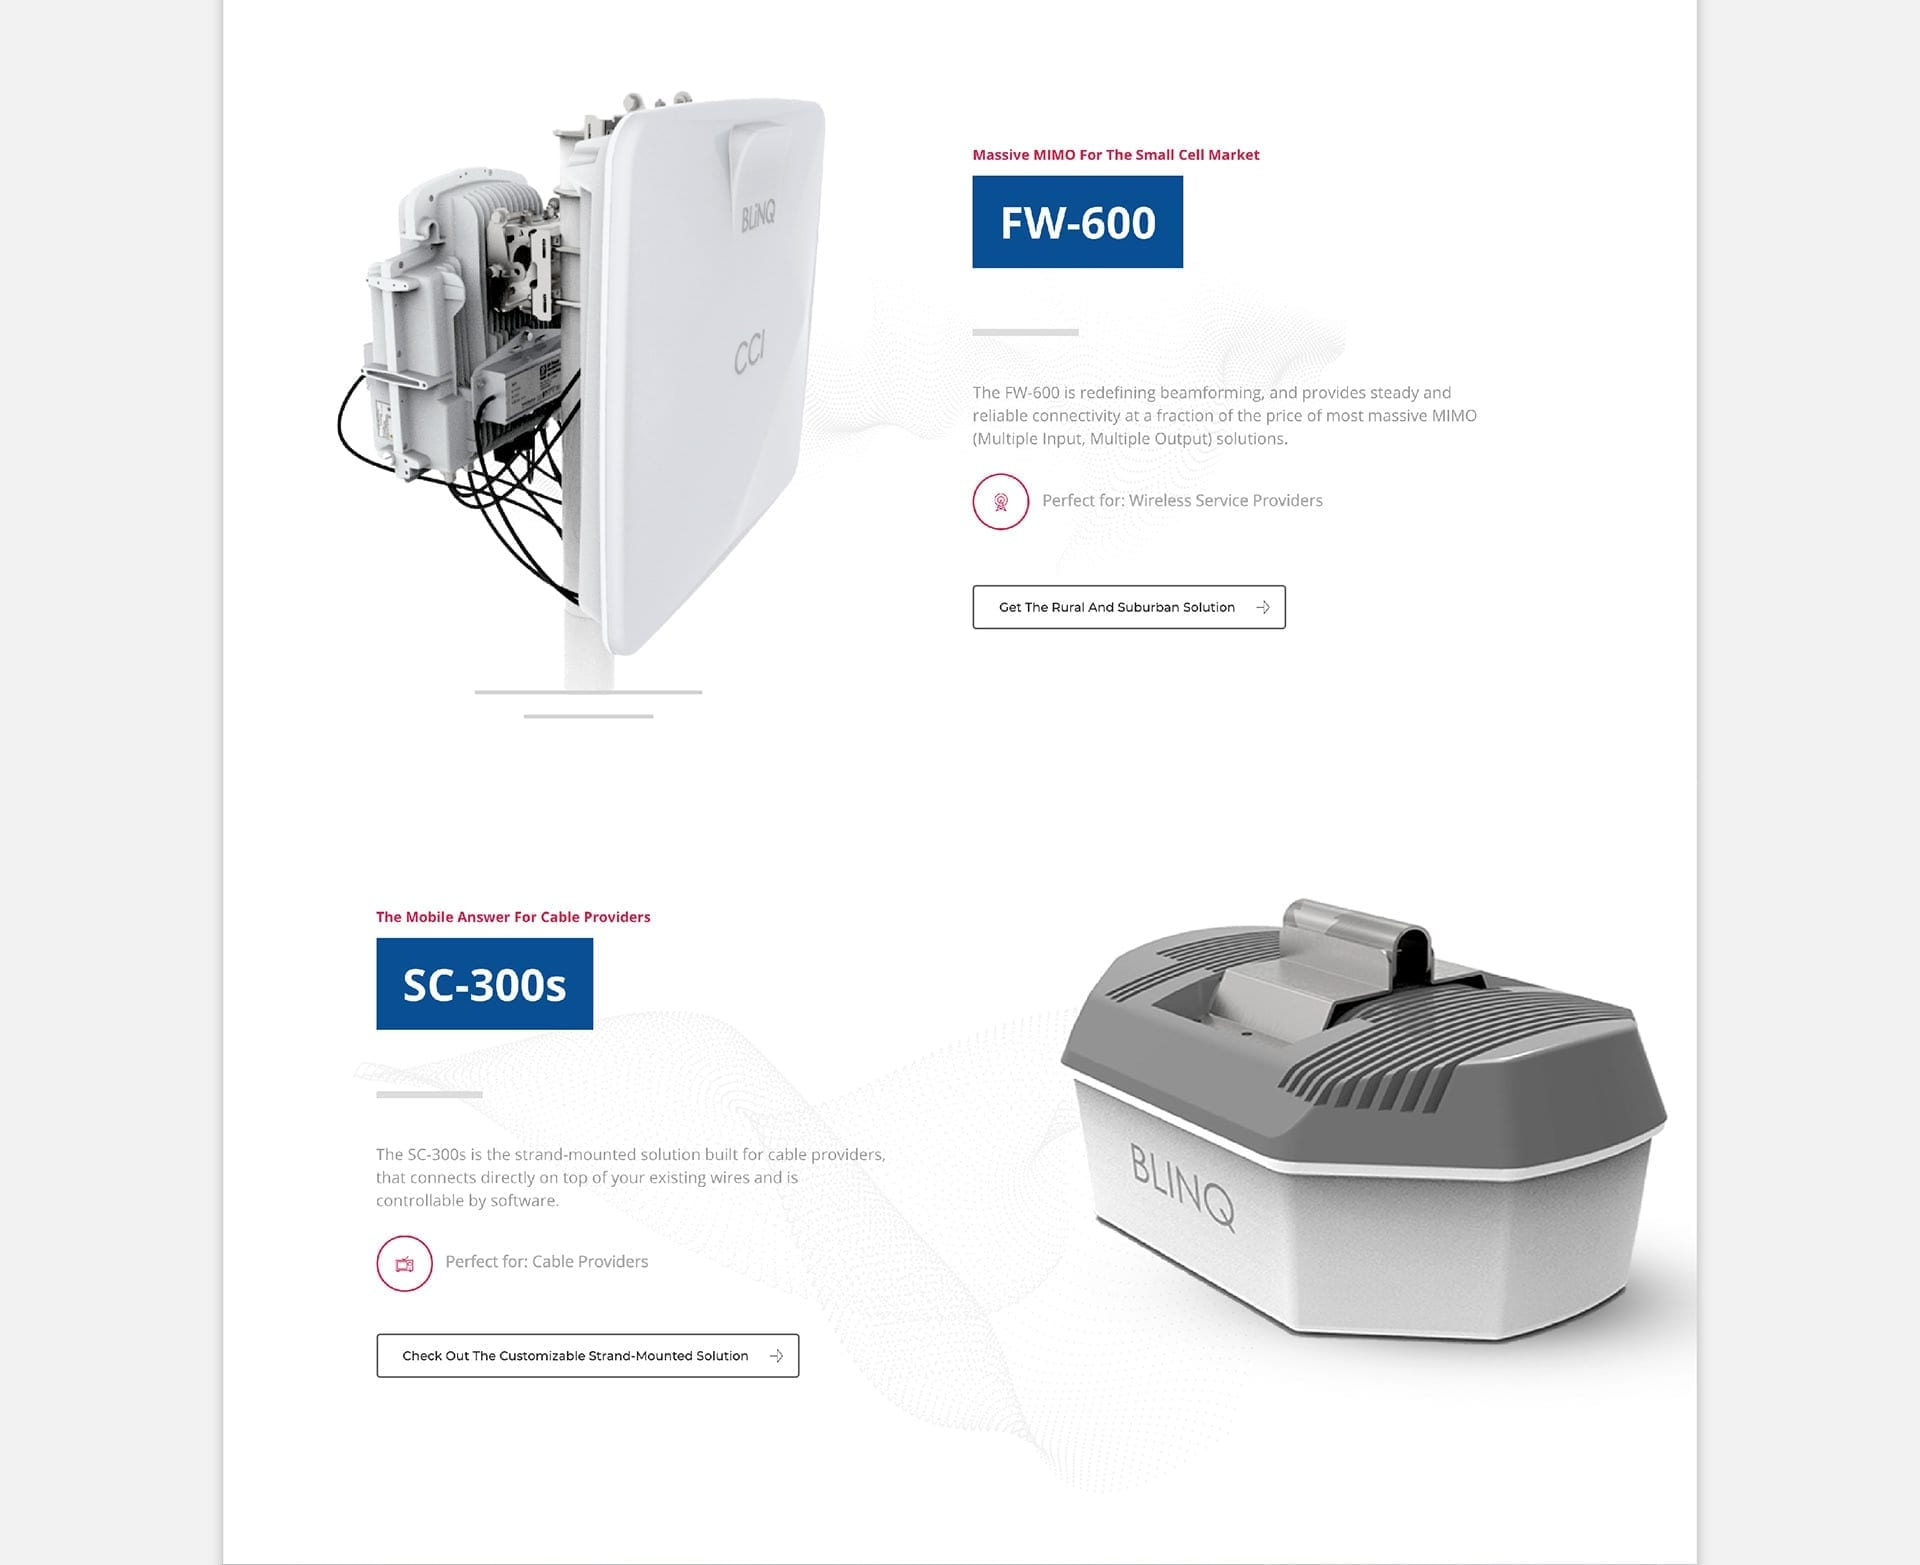 blinq networks homepage - products section fw600 and sc300s